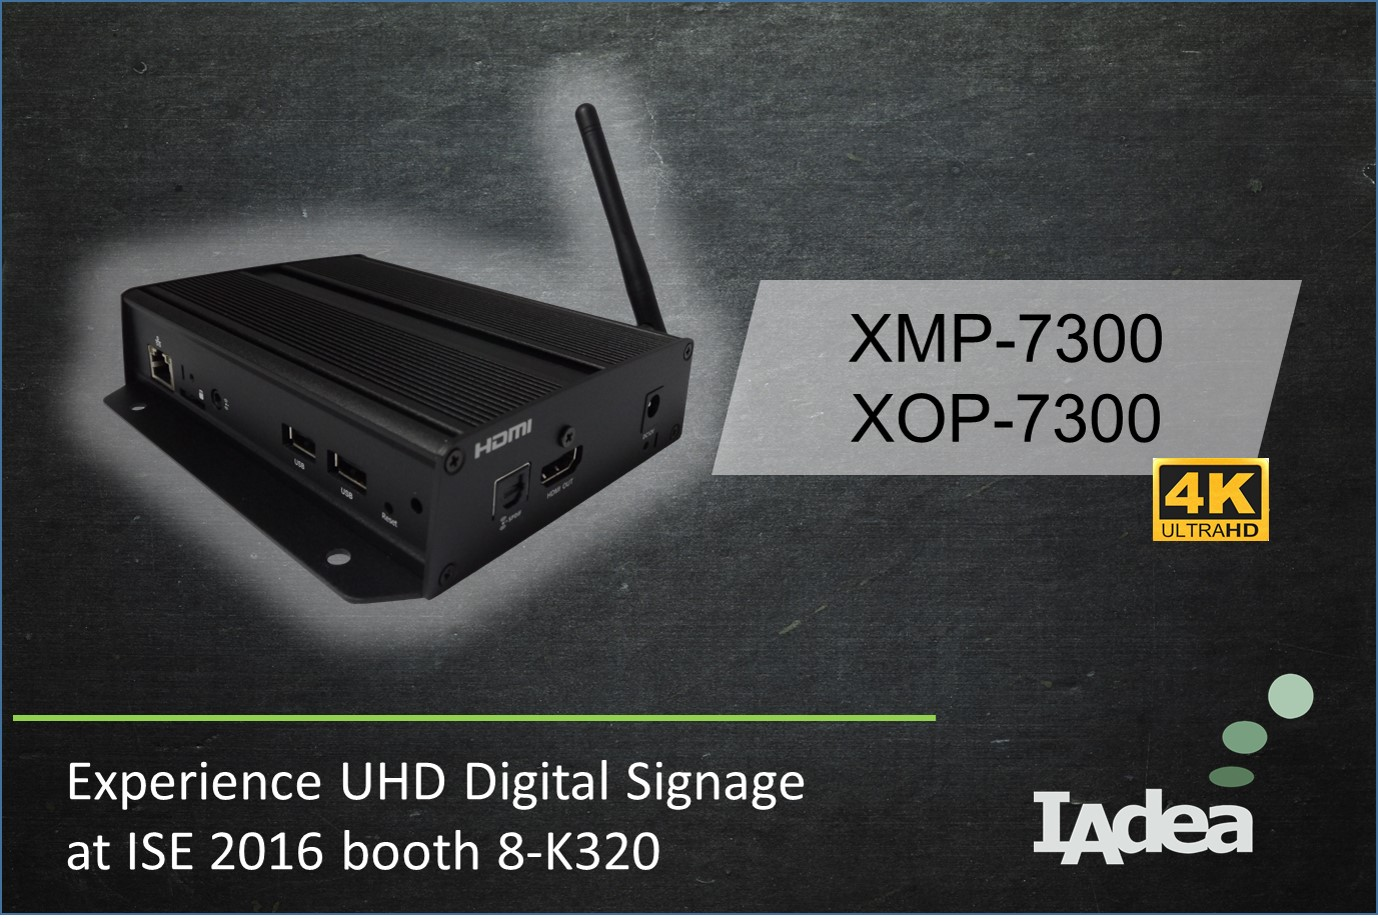 IAdea Launches 4K, Retail-focused UHD Digital Signage Media Players at ISE 2016